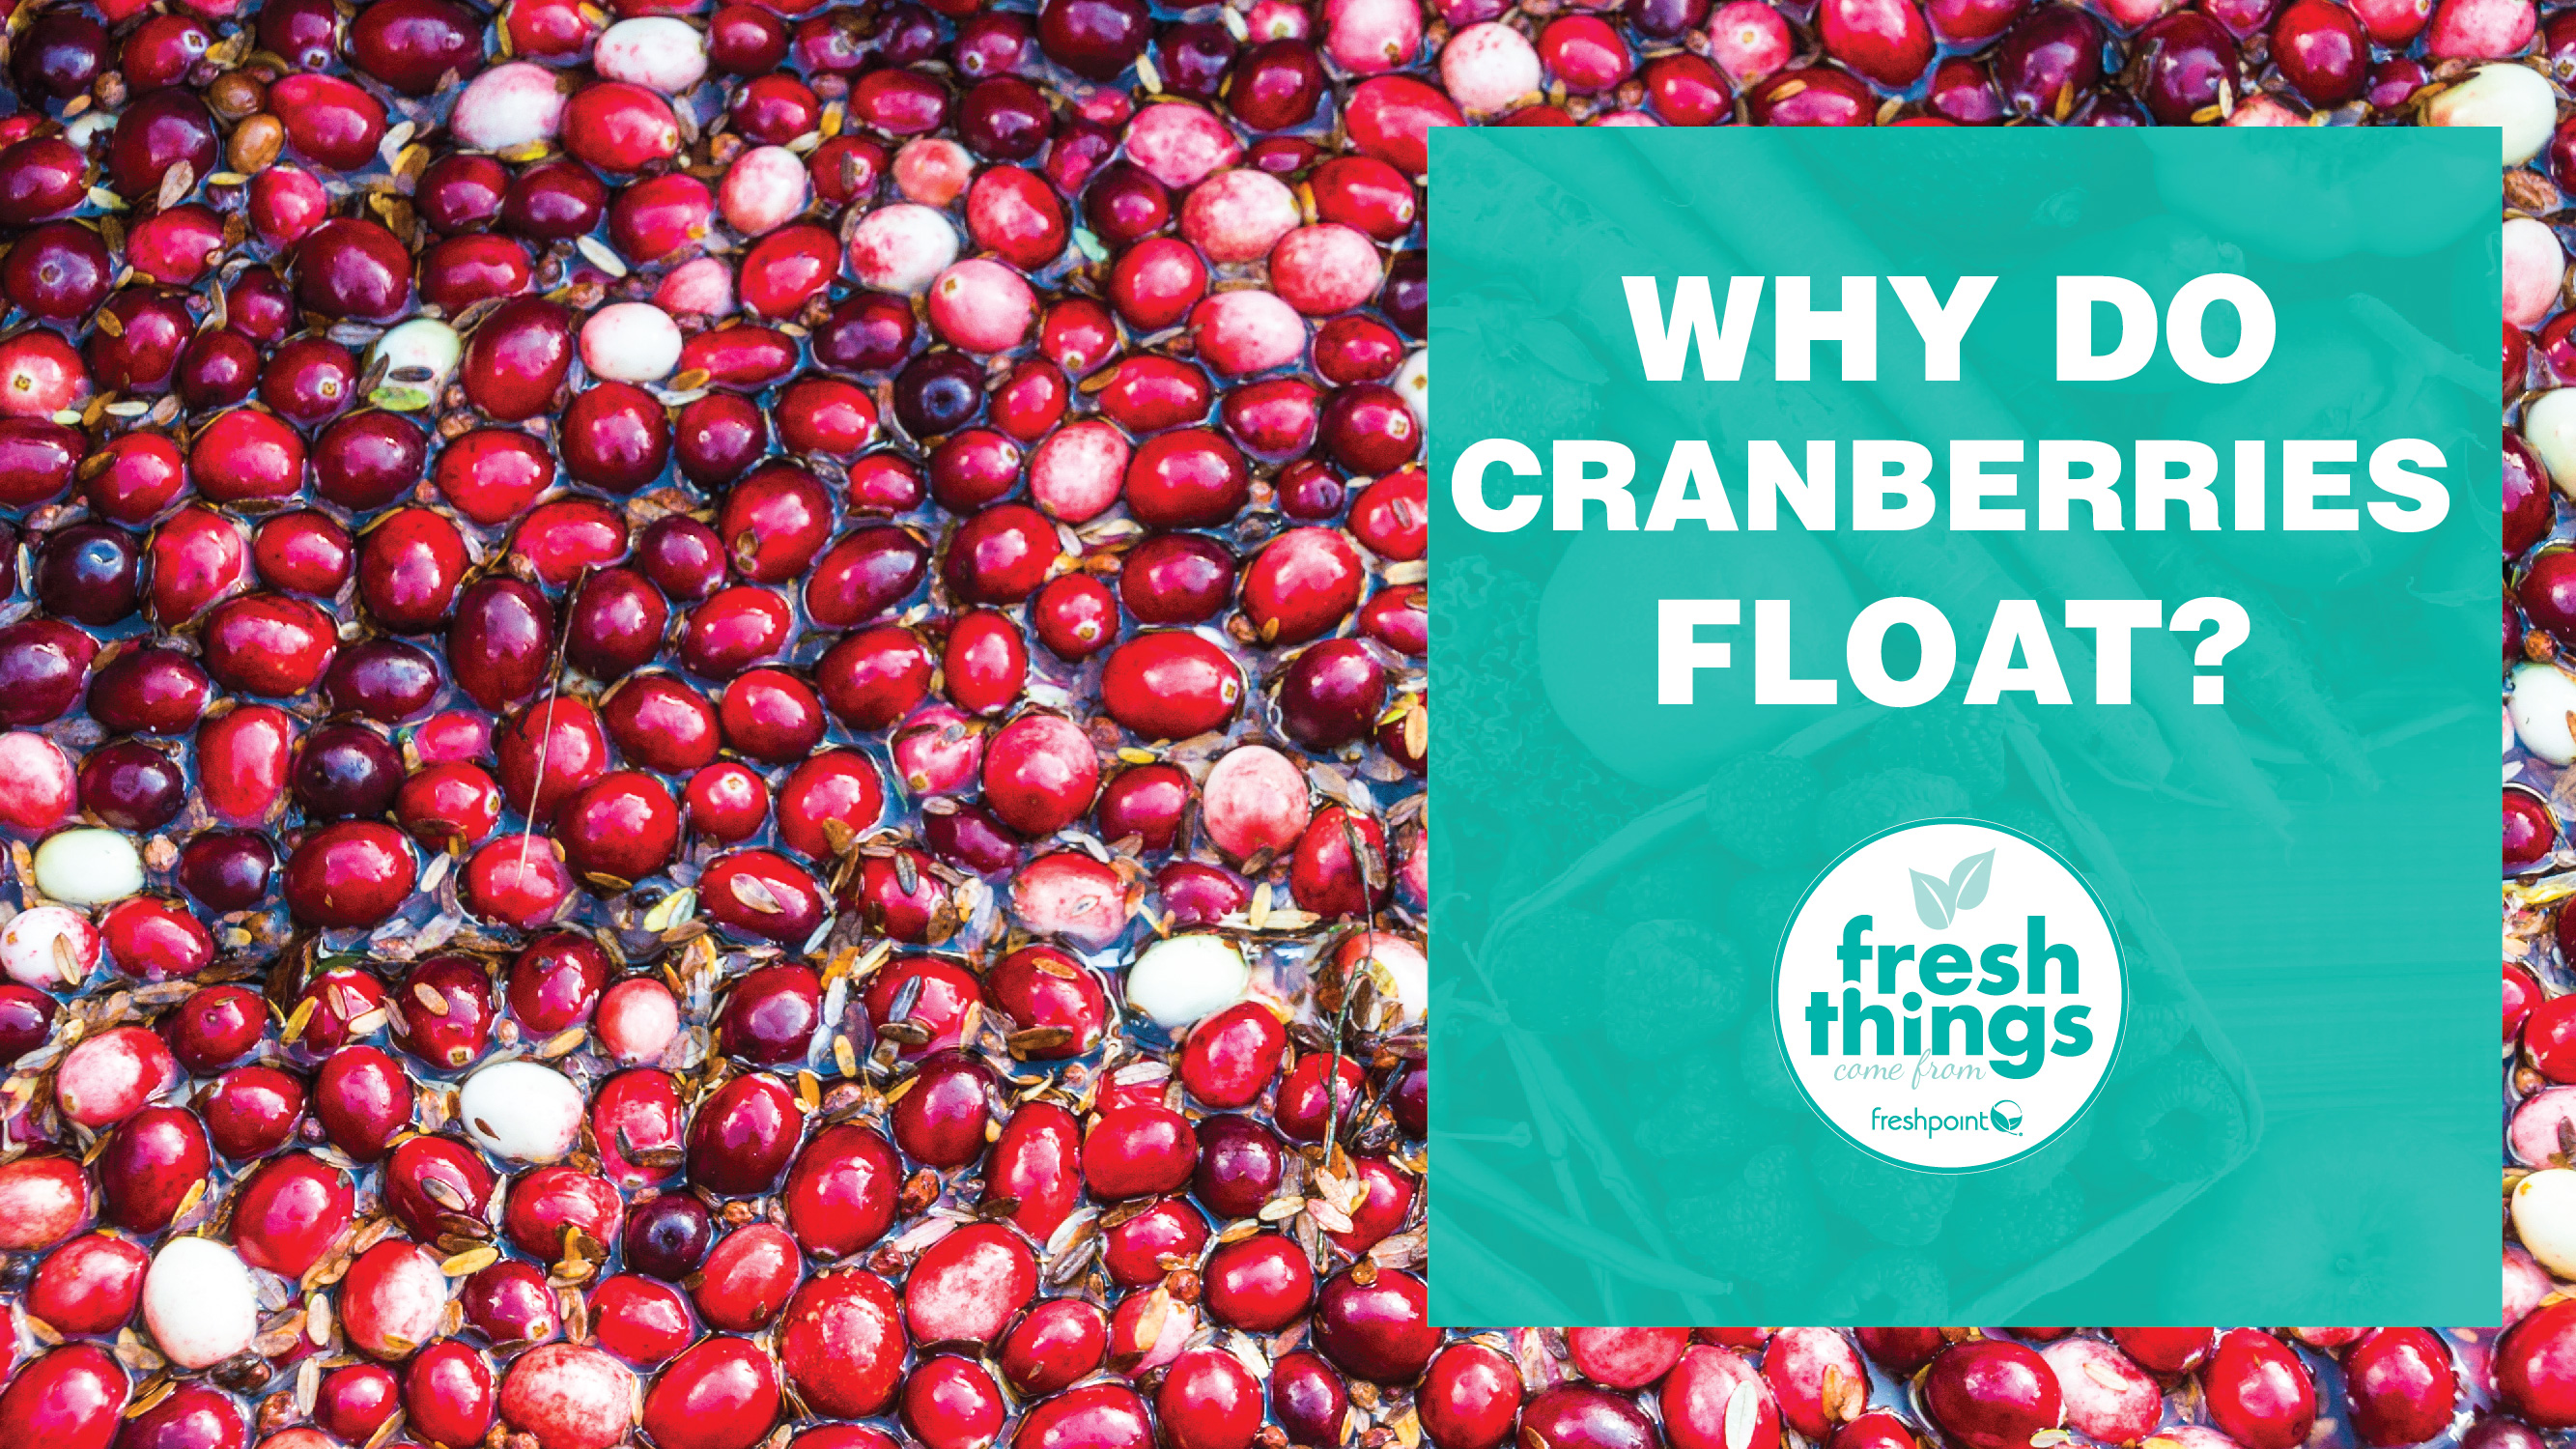 Freshpoint-produce-why-do-cranberries-float